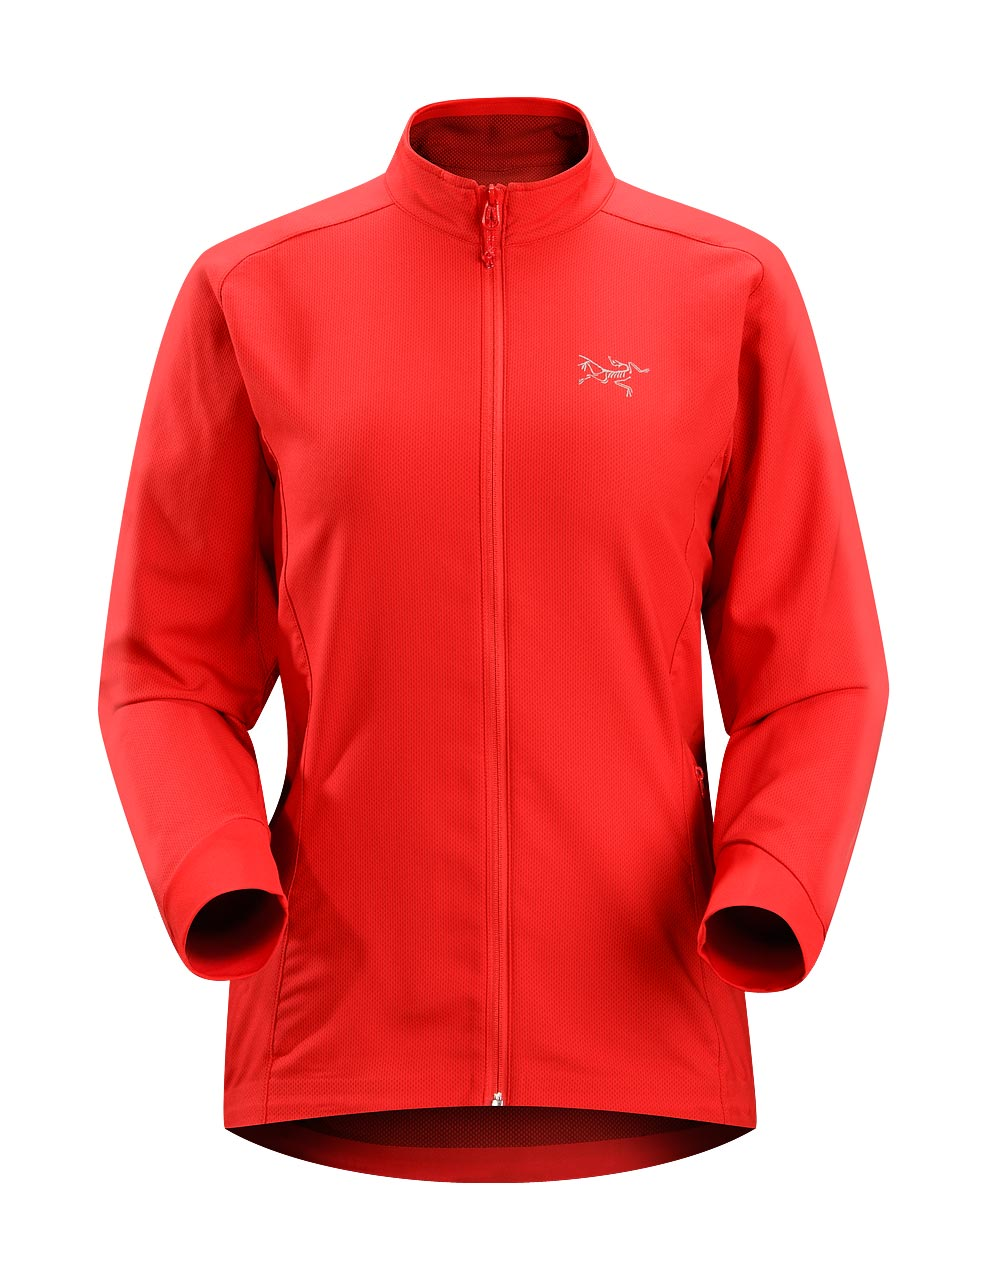 Arcteryx Jackets Women Grenadine Accelero Jacket